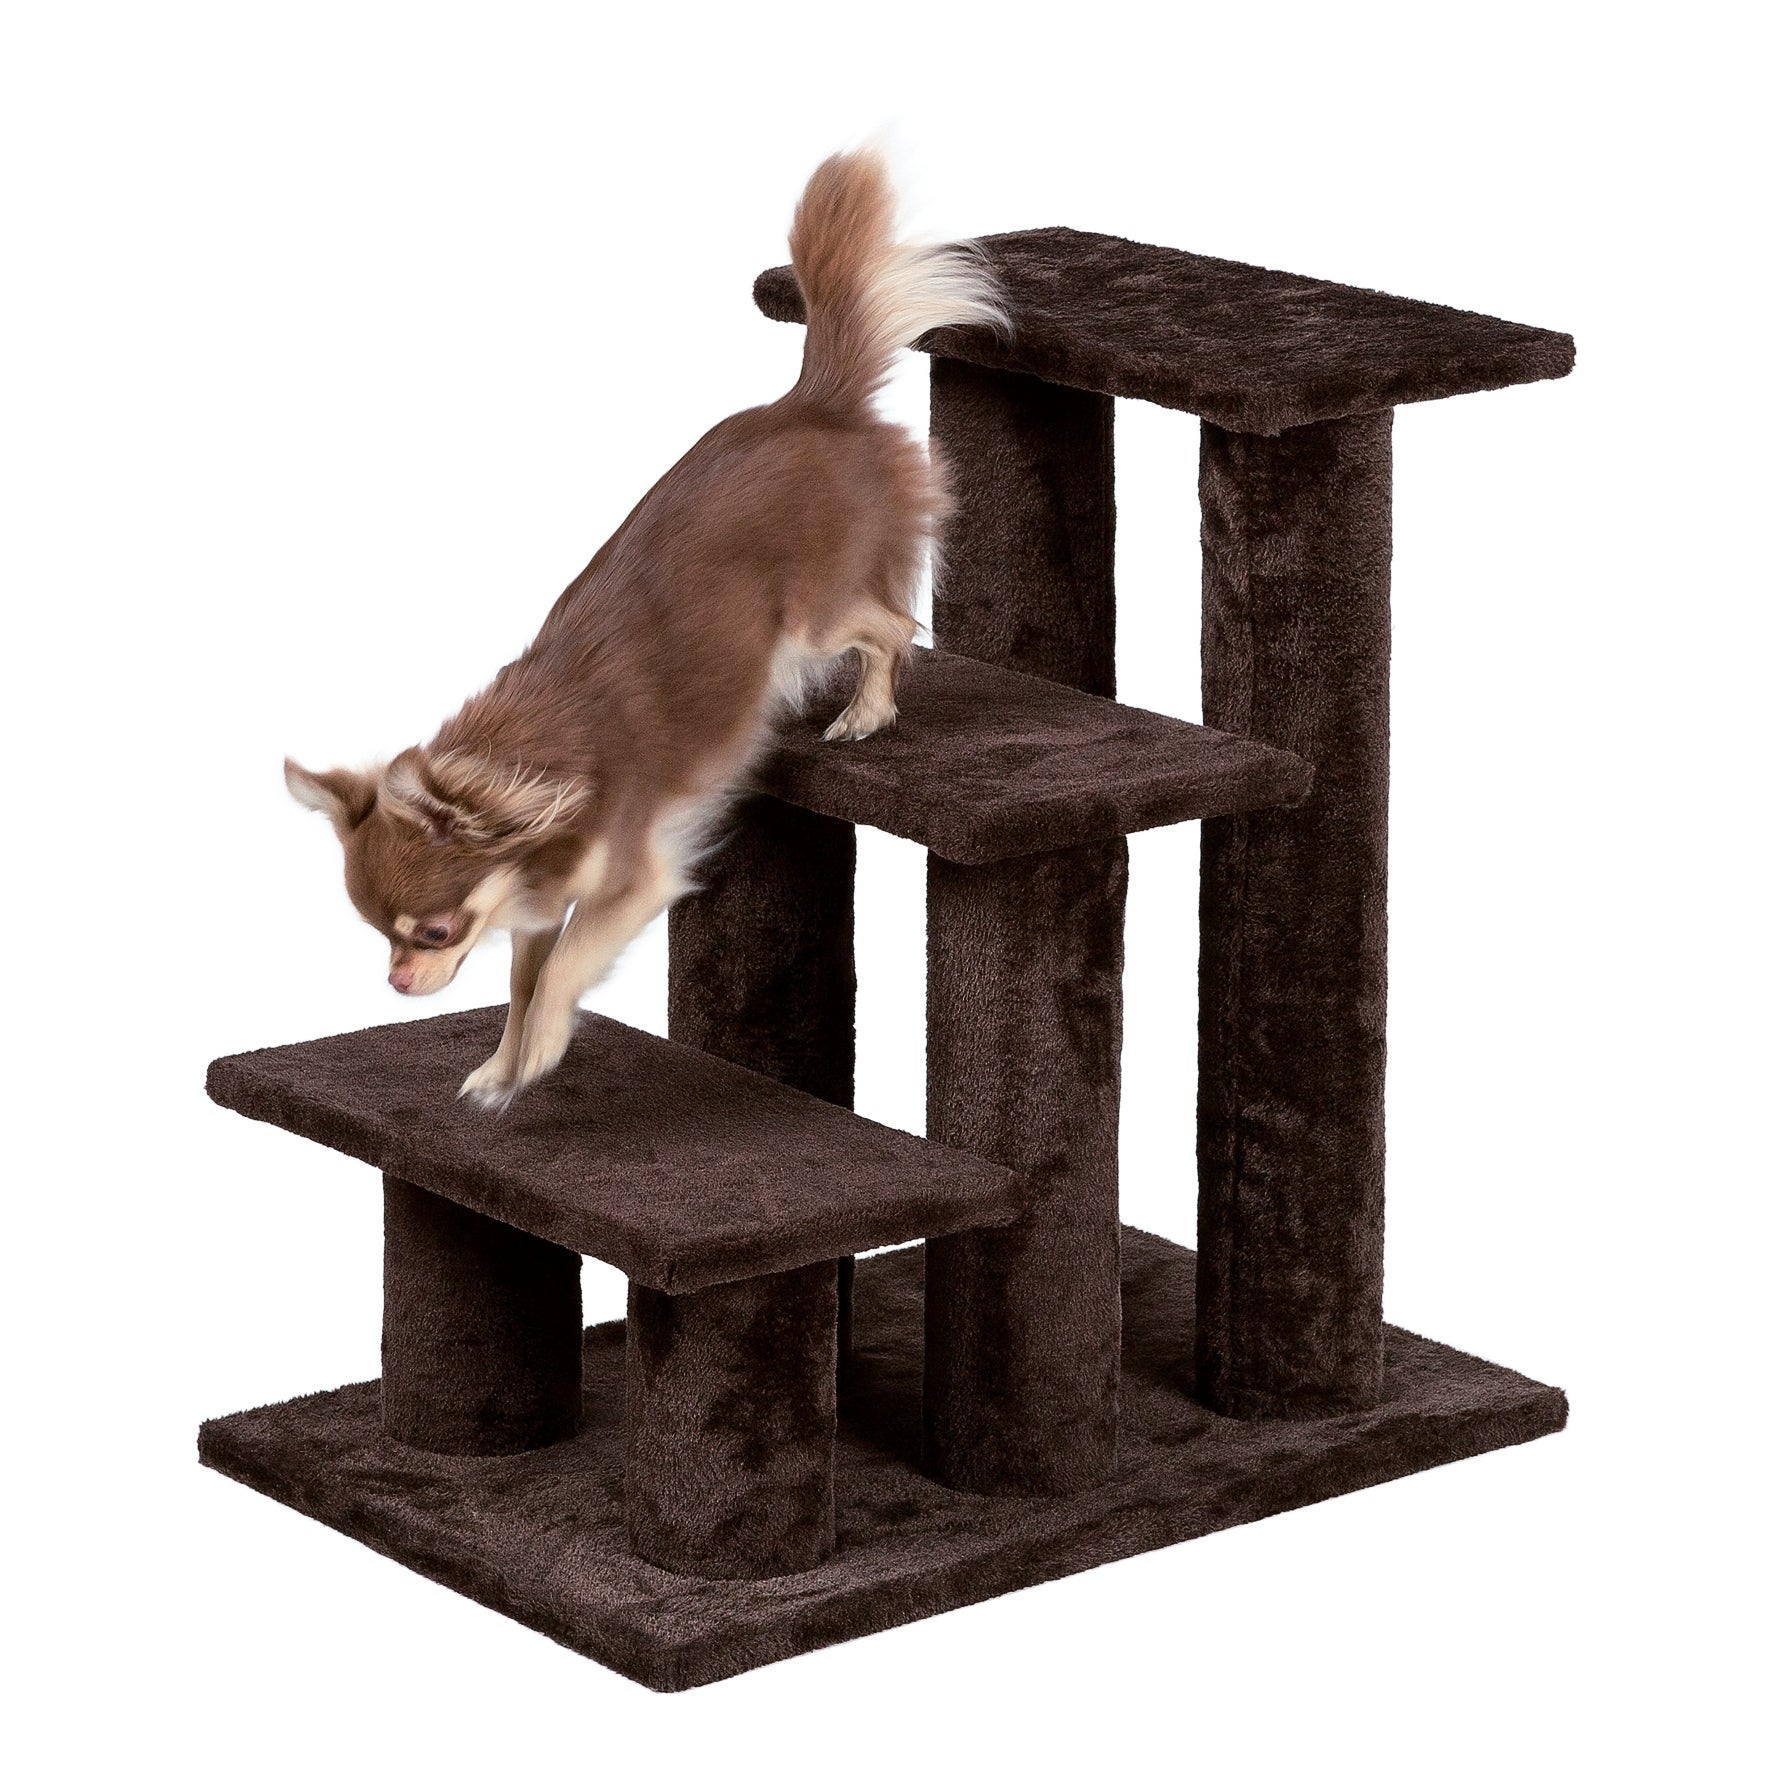 Trixie Plush Brown Pet Stairs (Brown)